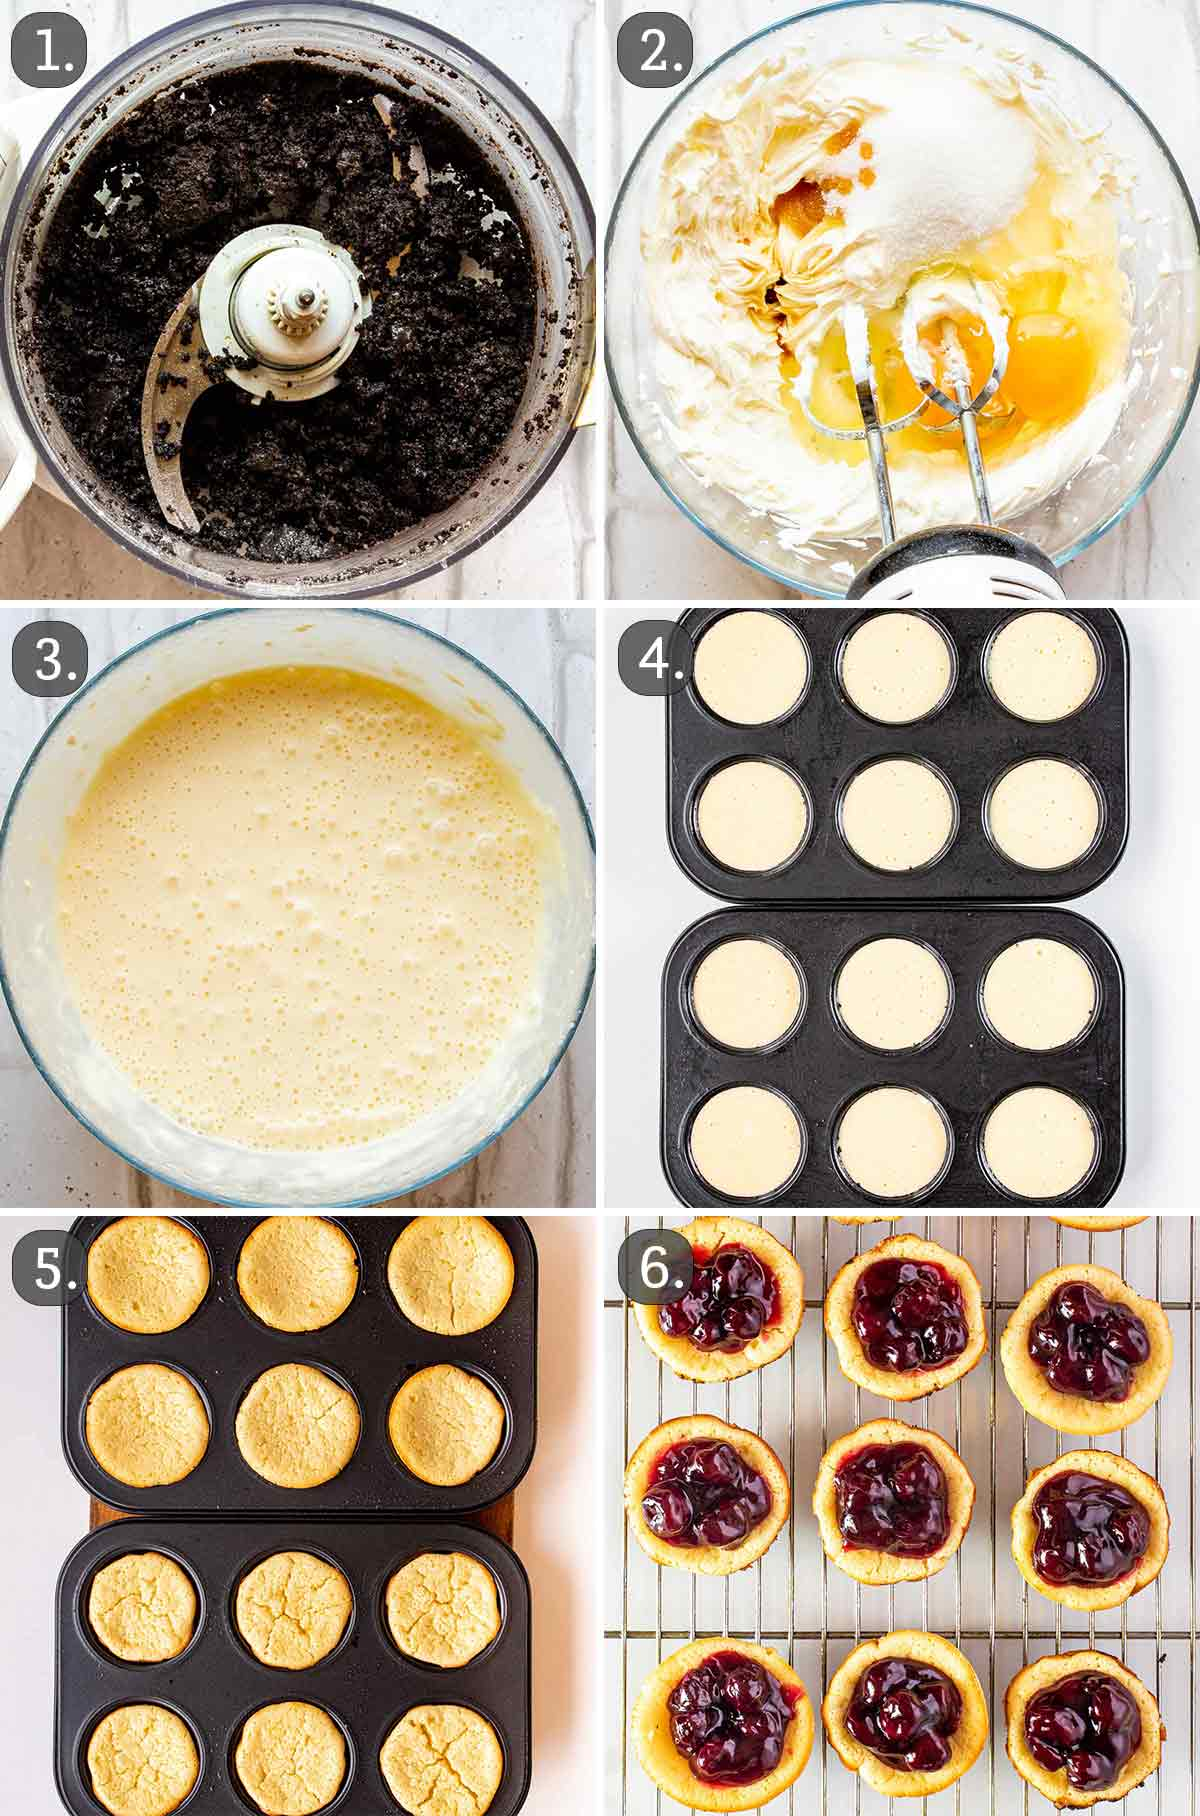 detailed process shots showing how to make mini cherry cheesecakes.